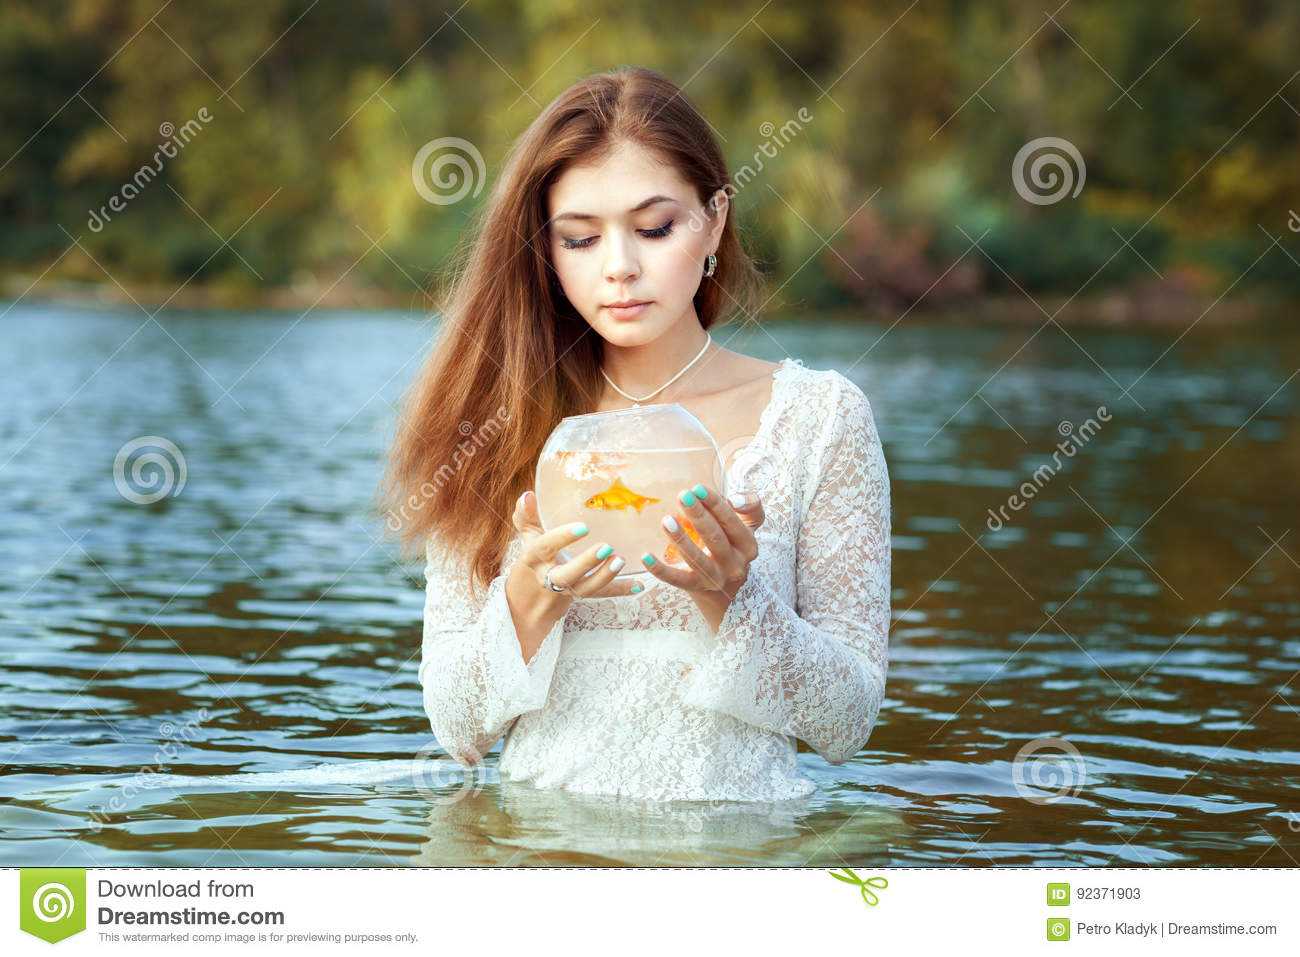 What of this goldfish would you wish